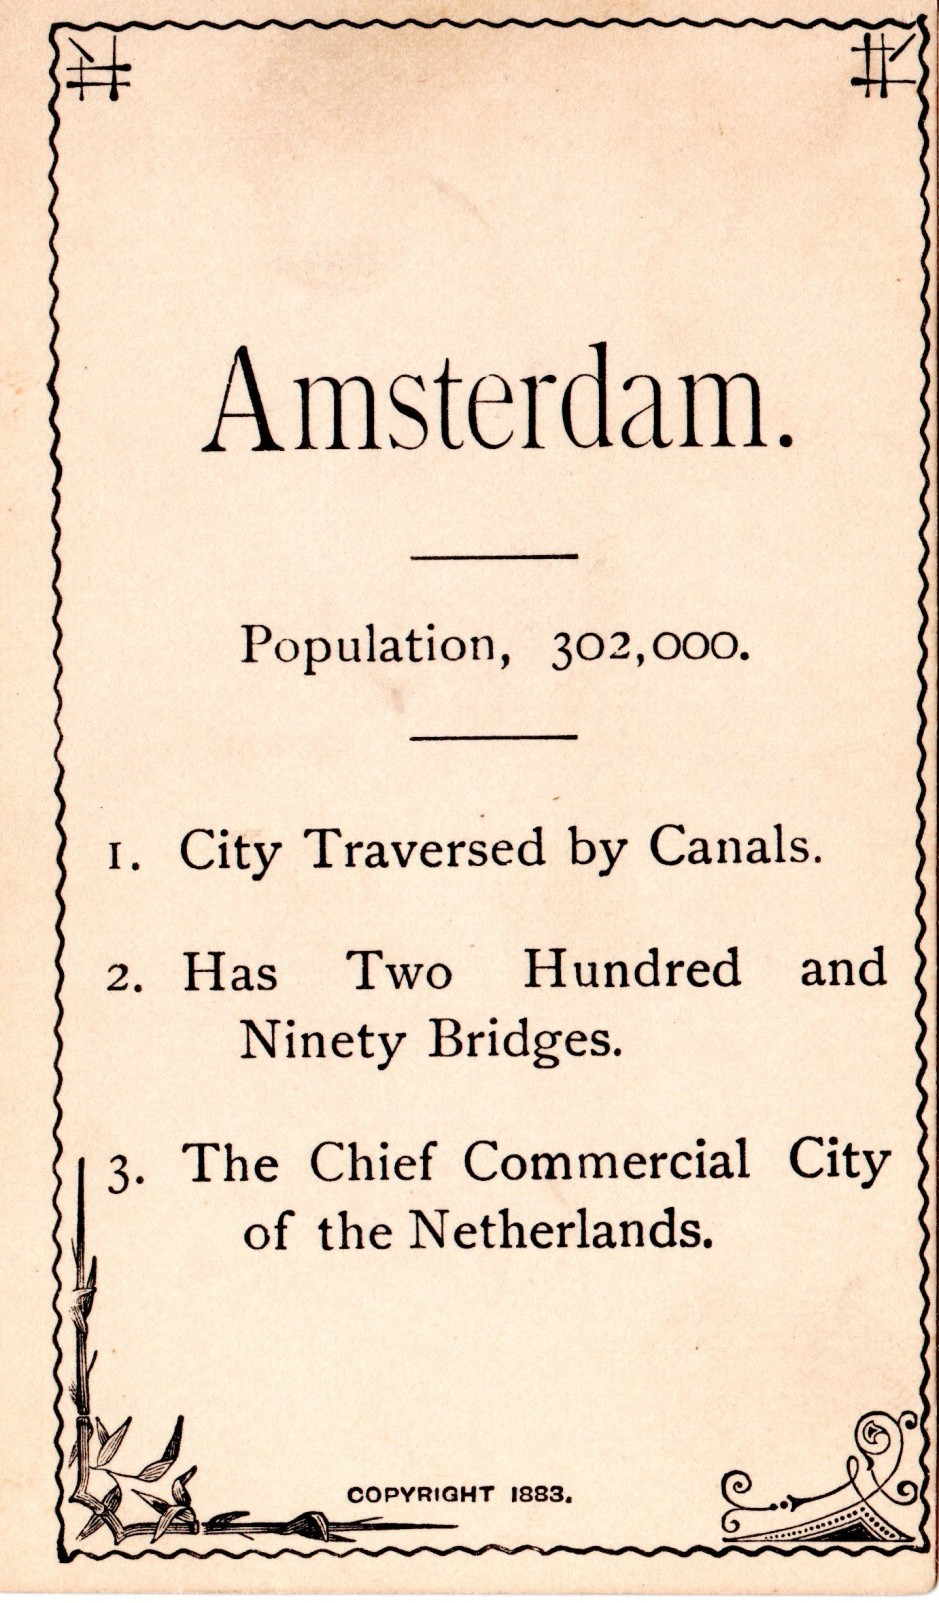 Early Flash Cards, Geography Cards, Amsterdam